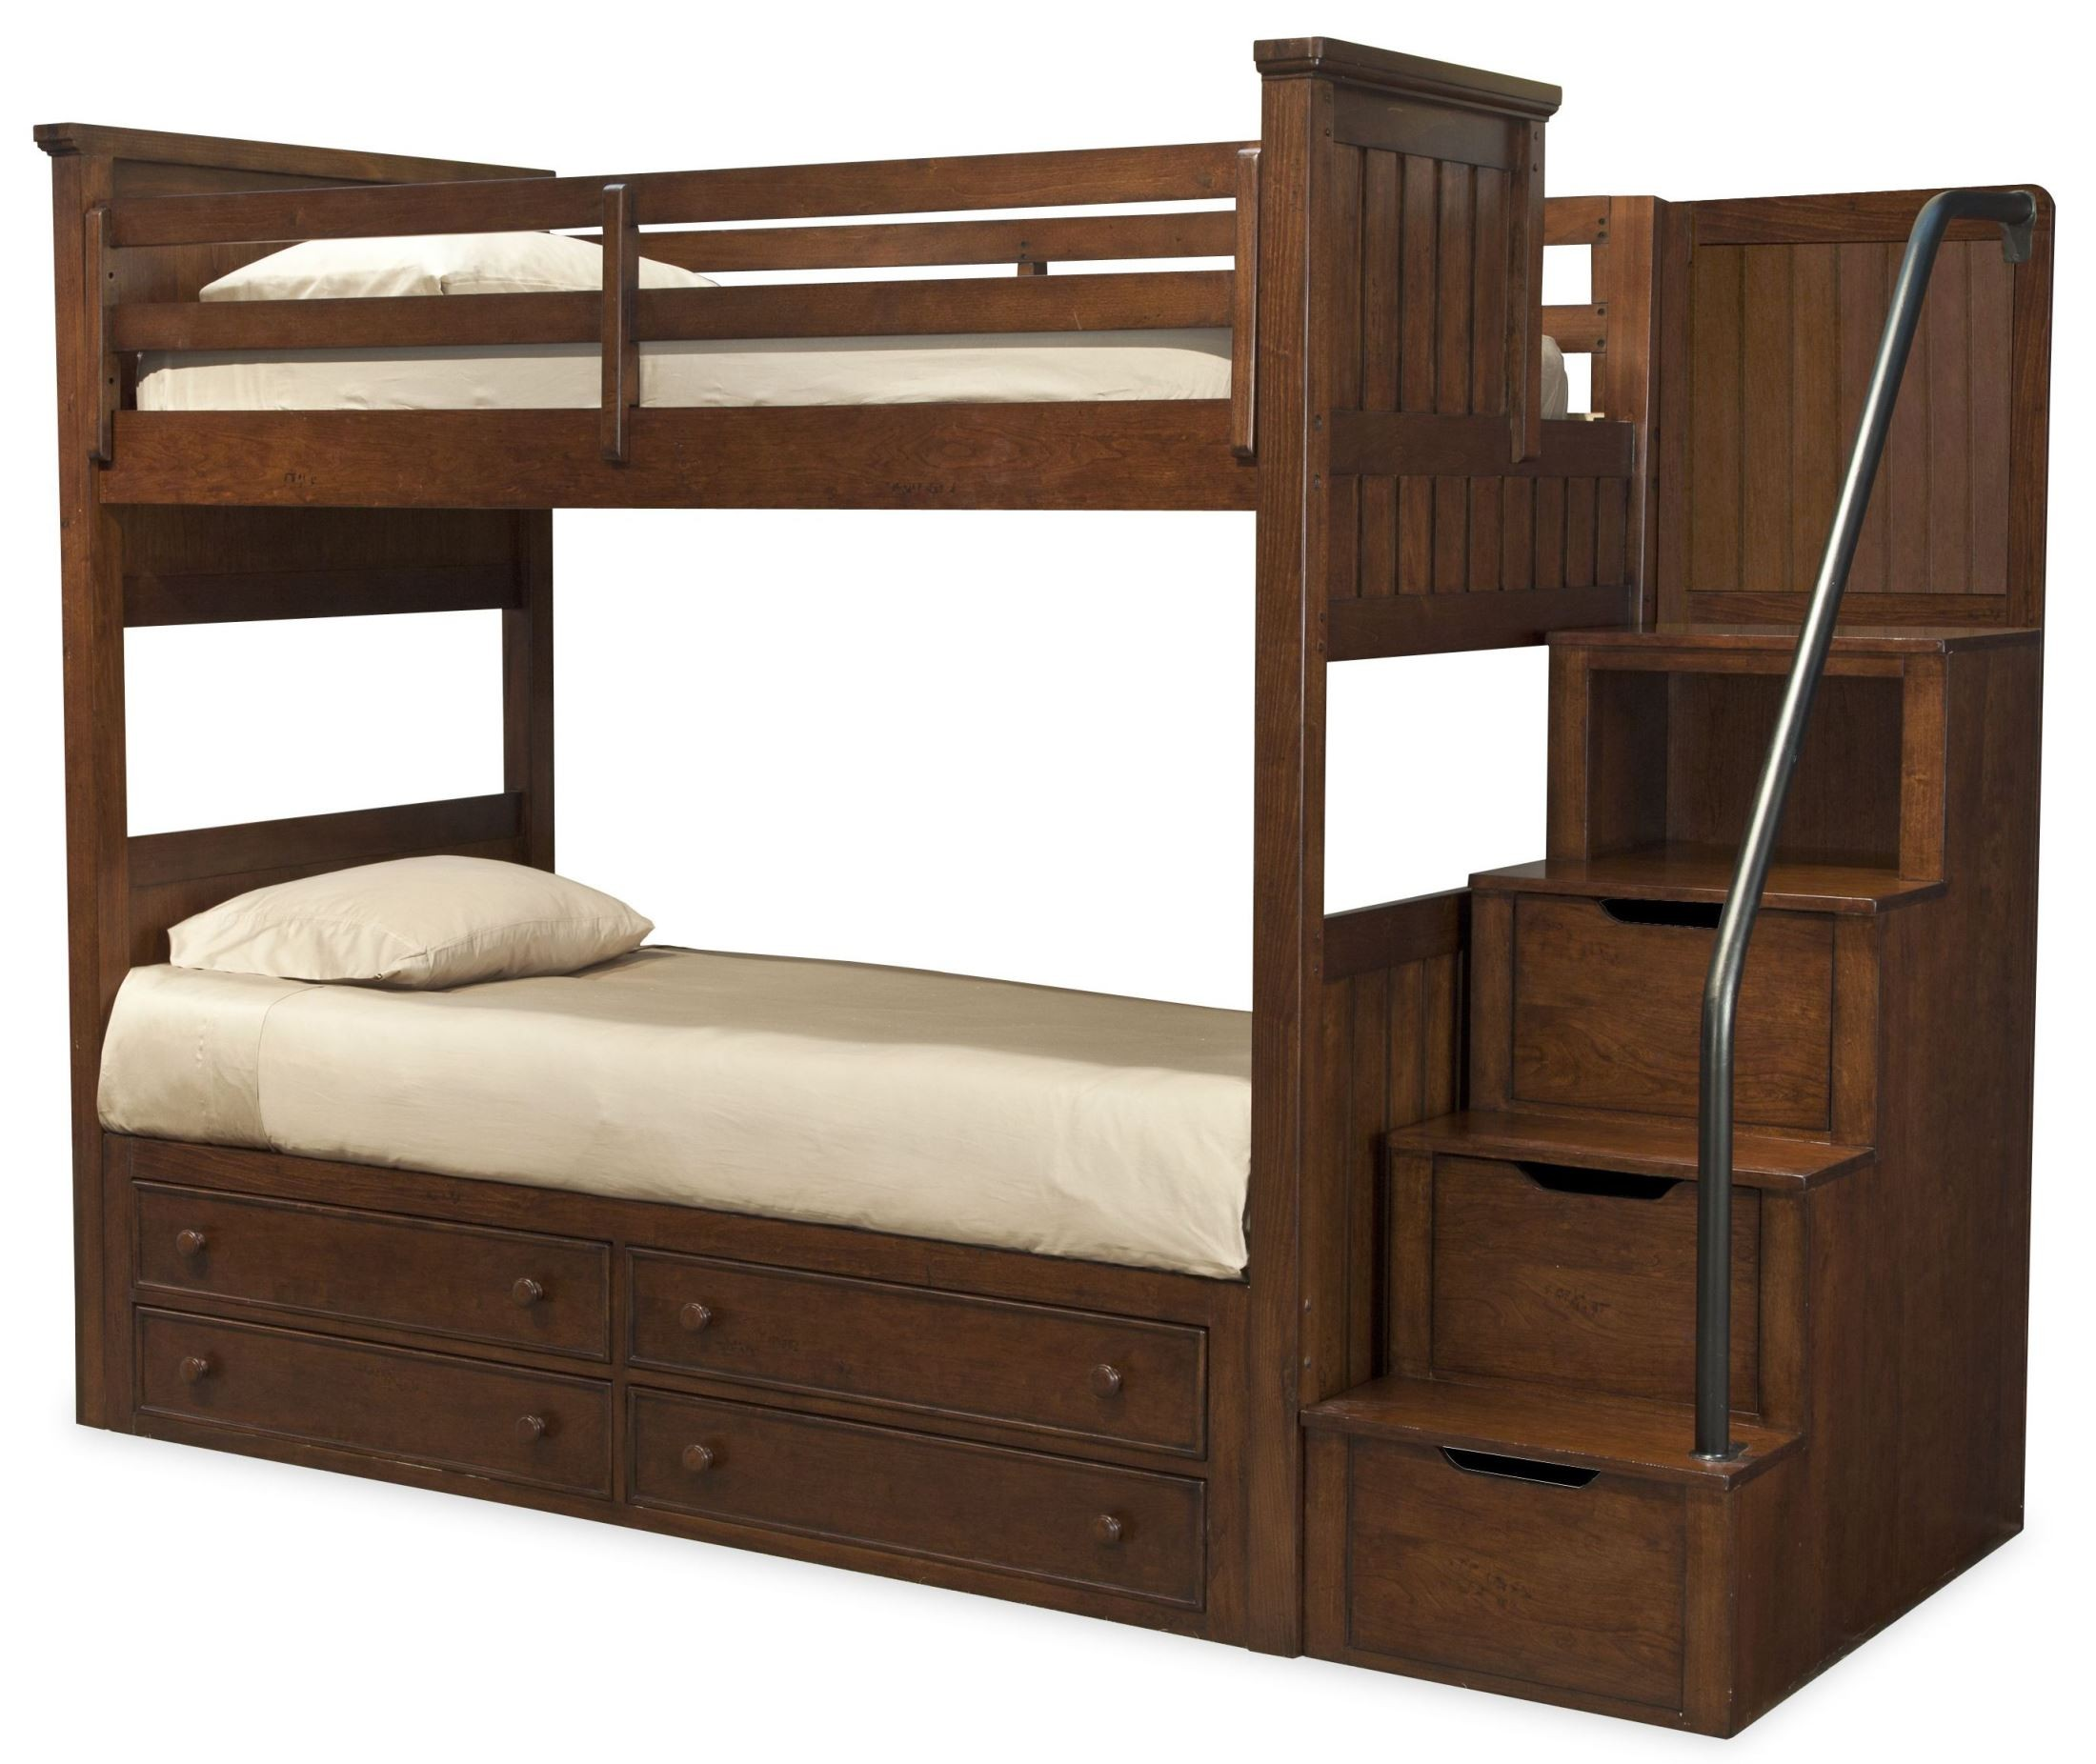 Bunk Beds For Kids On Black Friday